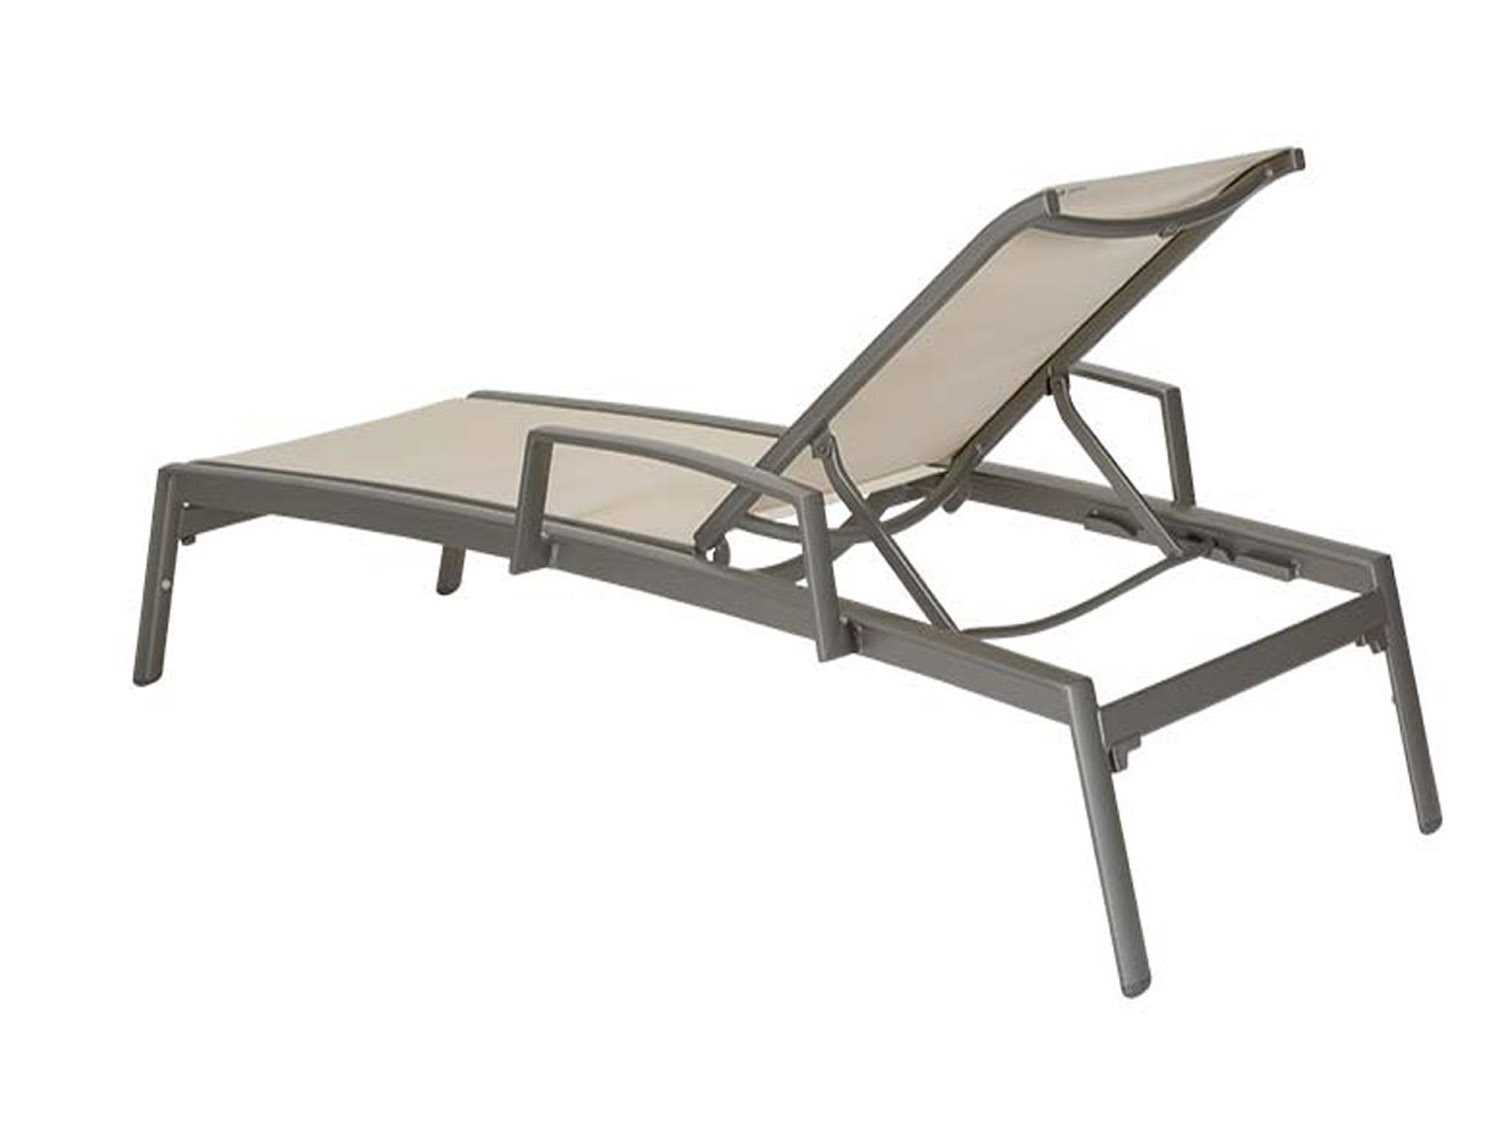 Tropitone elance relaxed sling aluminum chaise lounge with for Aluminium chaise lounge